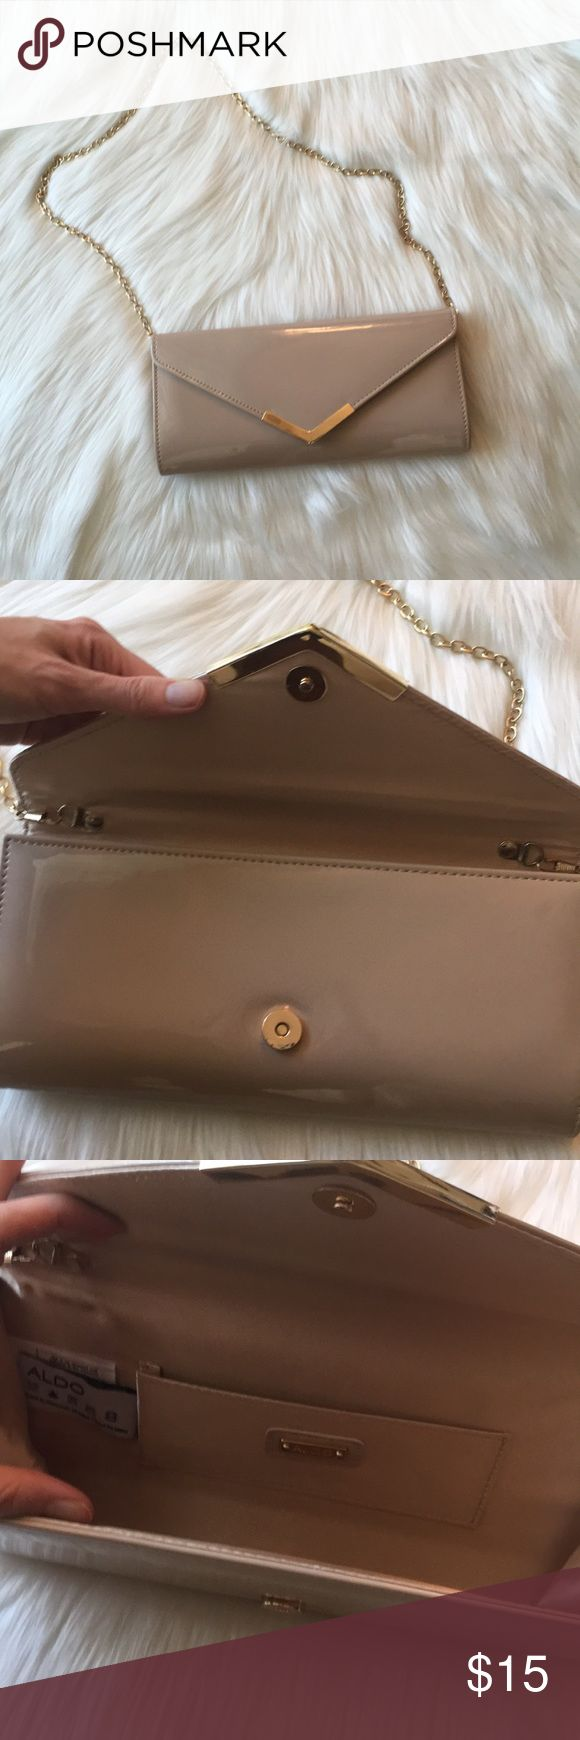 """Aldo Gold and Neutral Clutch w Chain Elegant and versatile clutch from Aldo in EUC! Gold hardware on front magnetic snap closure and gold chain that can be worn over the shoulder or tucked into the purse to convert to a clutch. 11"""" long, 5.5"""" tall, 1.5"""" wide, 16"""" strap drop. See tag photo for material content. Aldo Bags Clutches & Wristlets"""